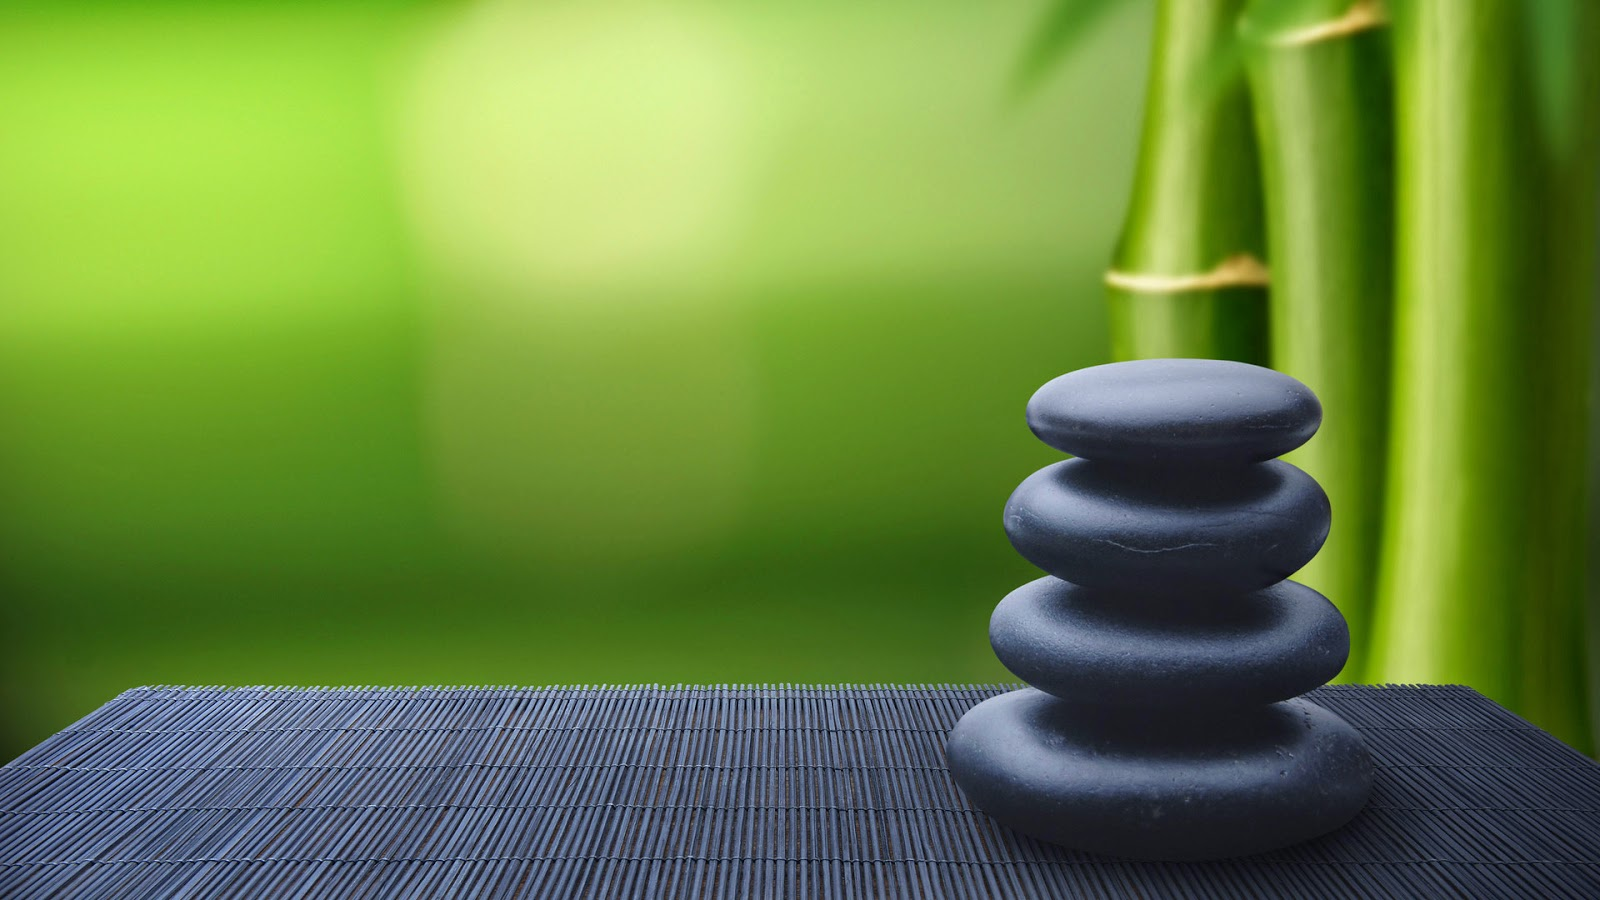 Zen-Bamboo-background-image-with-blacl-pebble-stone-image